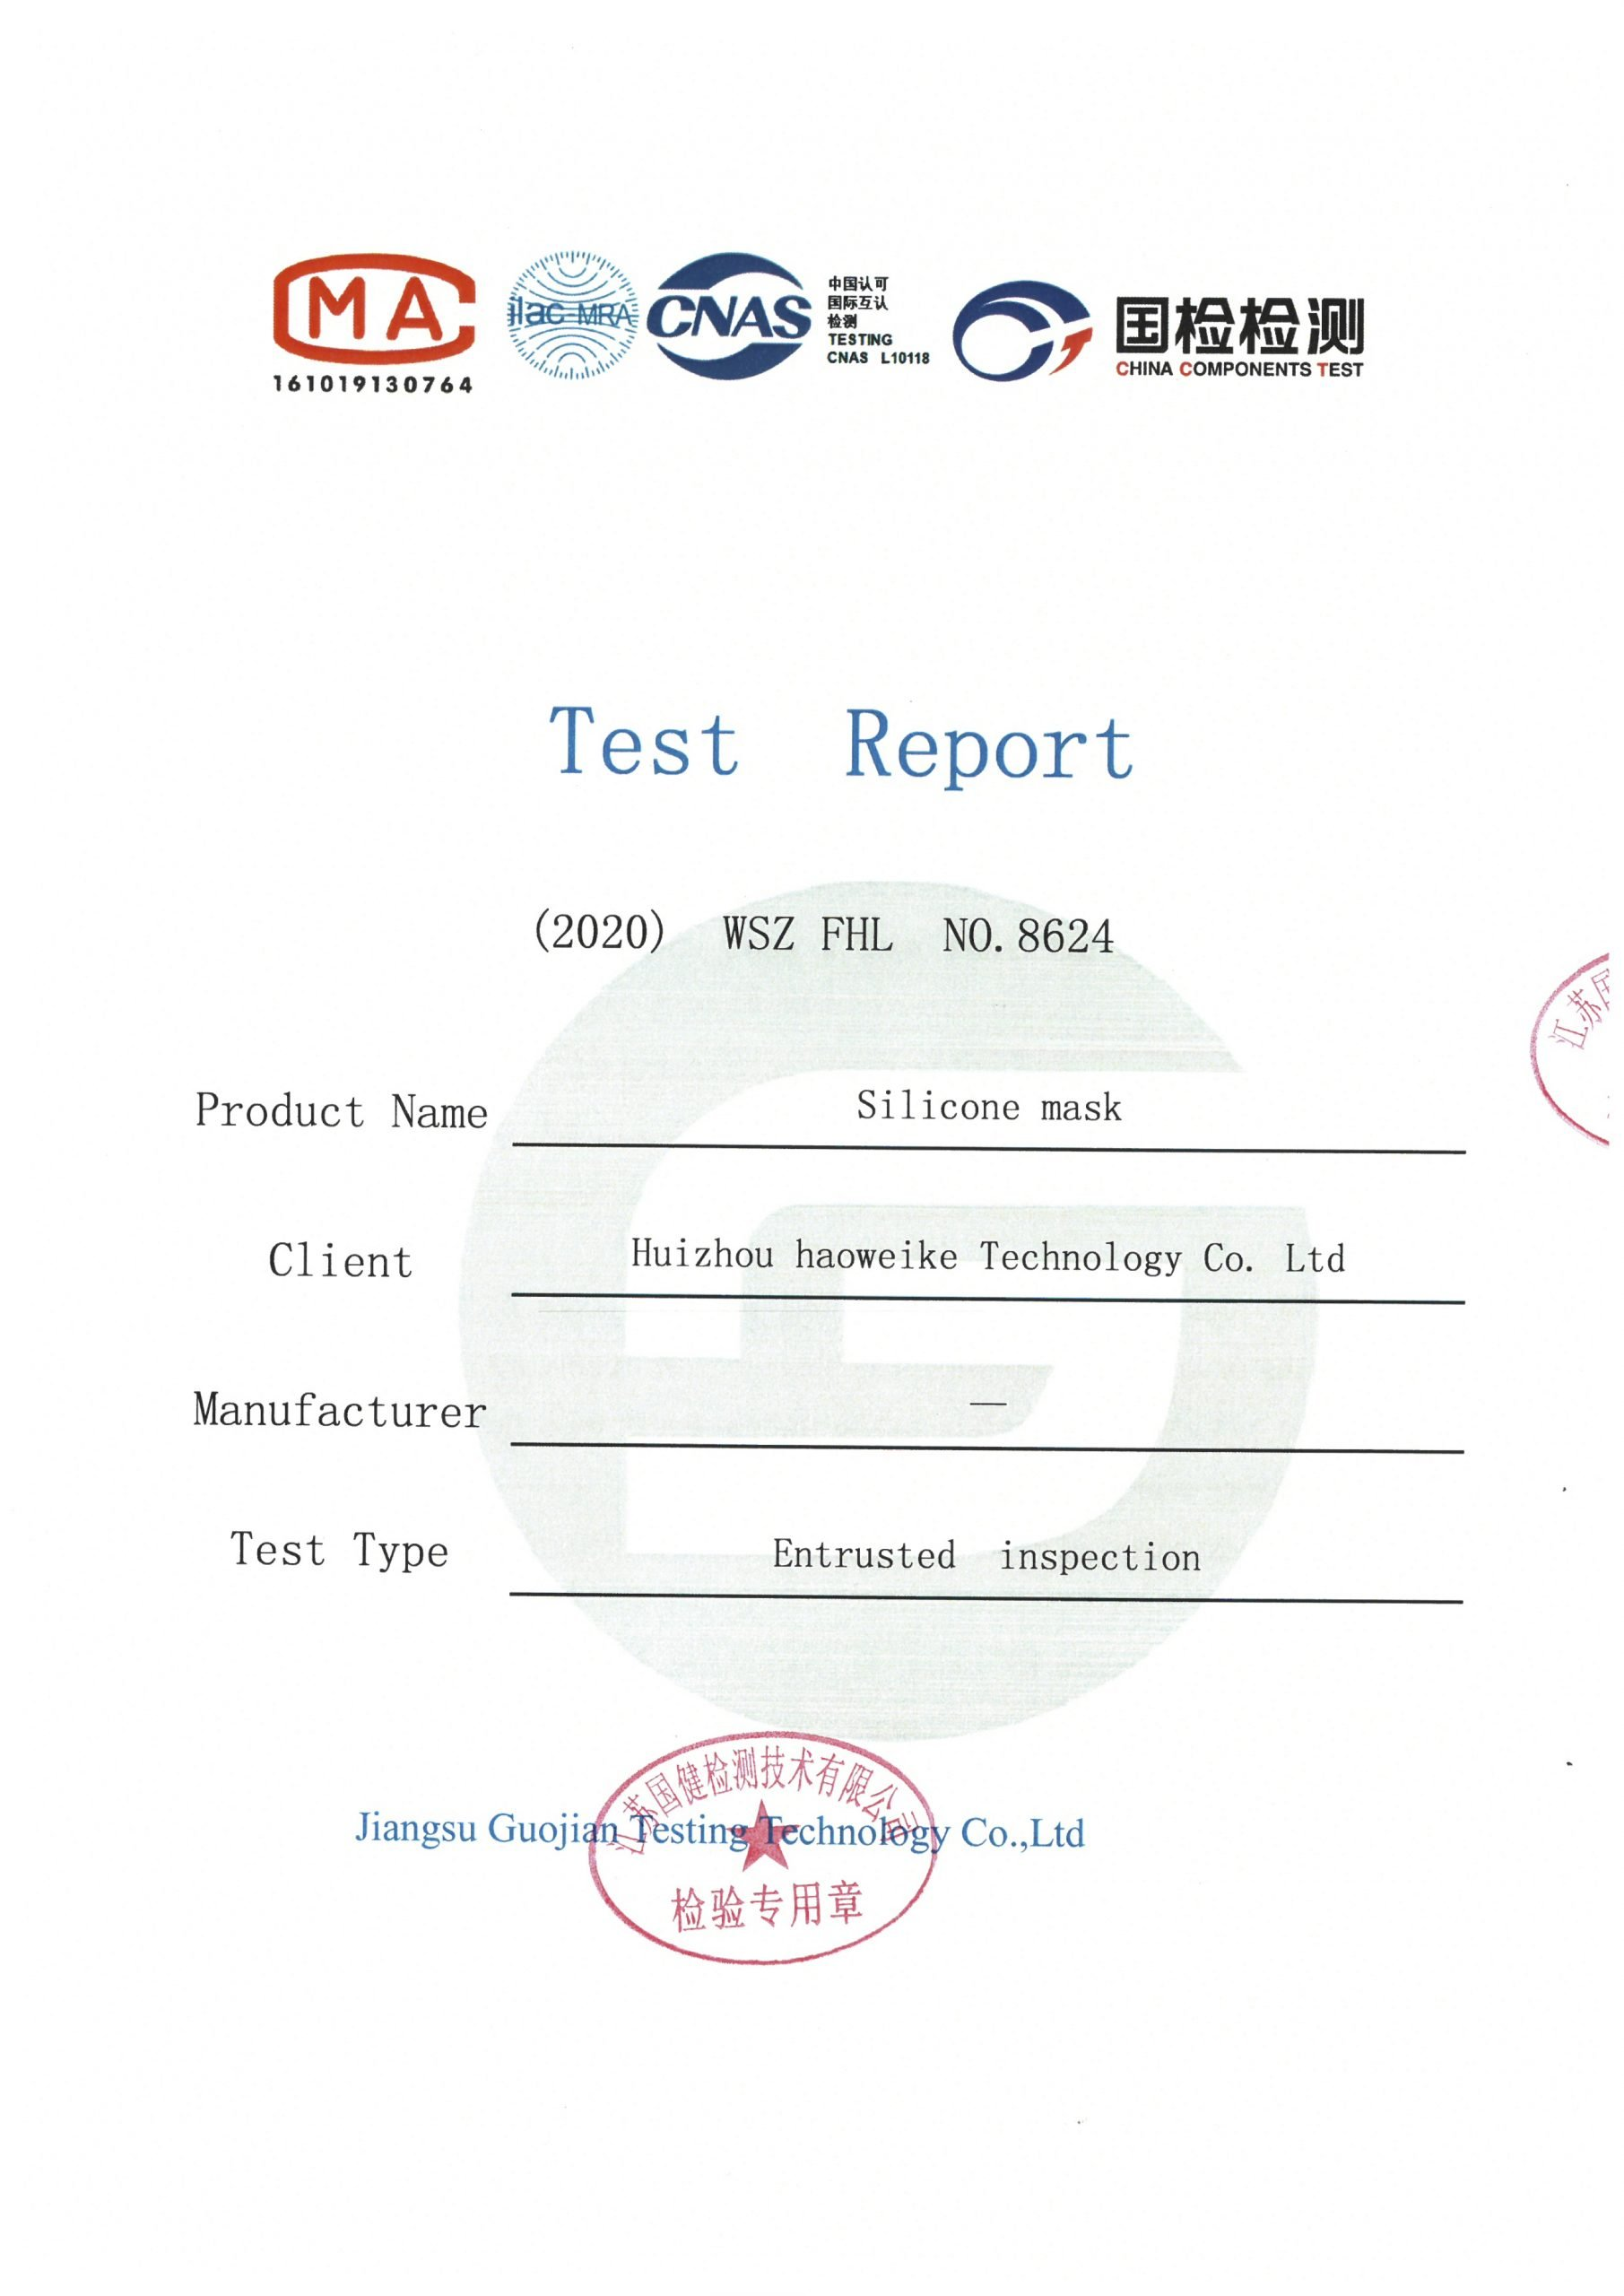 KN95 Test Report